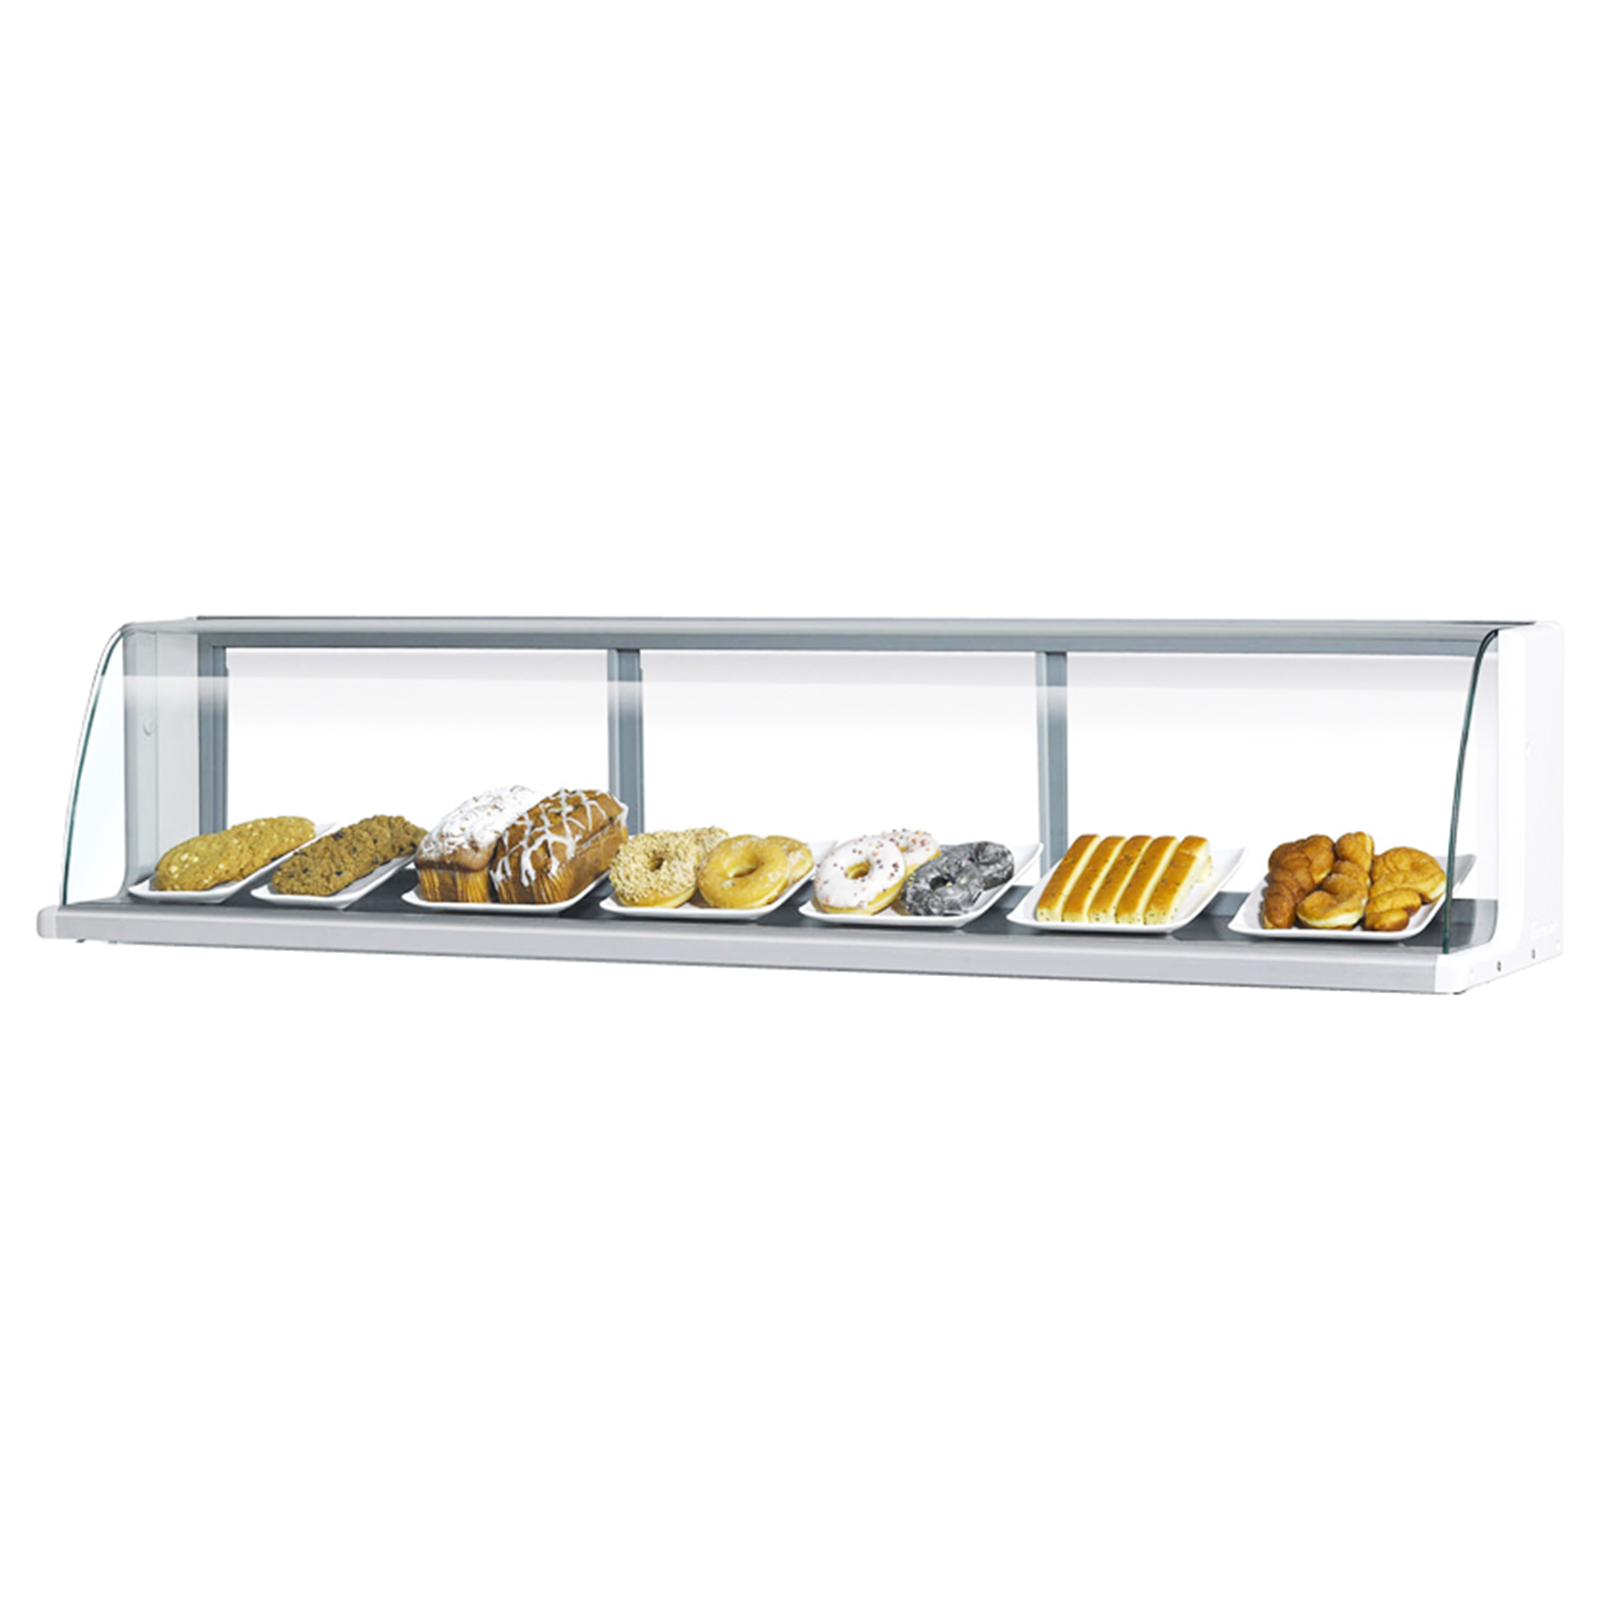 Turbo Air TOMD-50LW(B) display case, non-refrigerated countertop